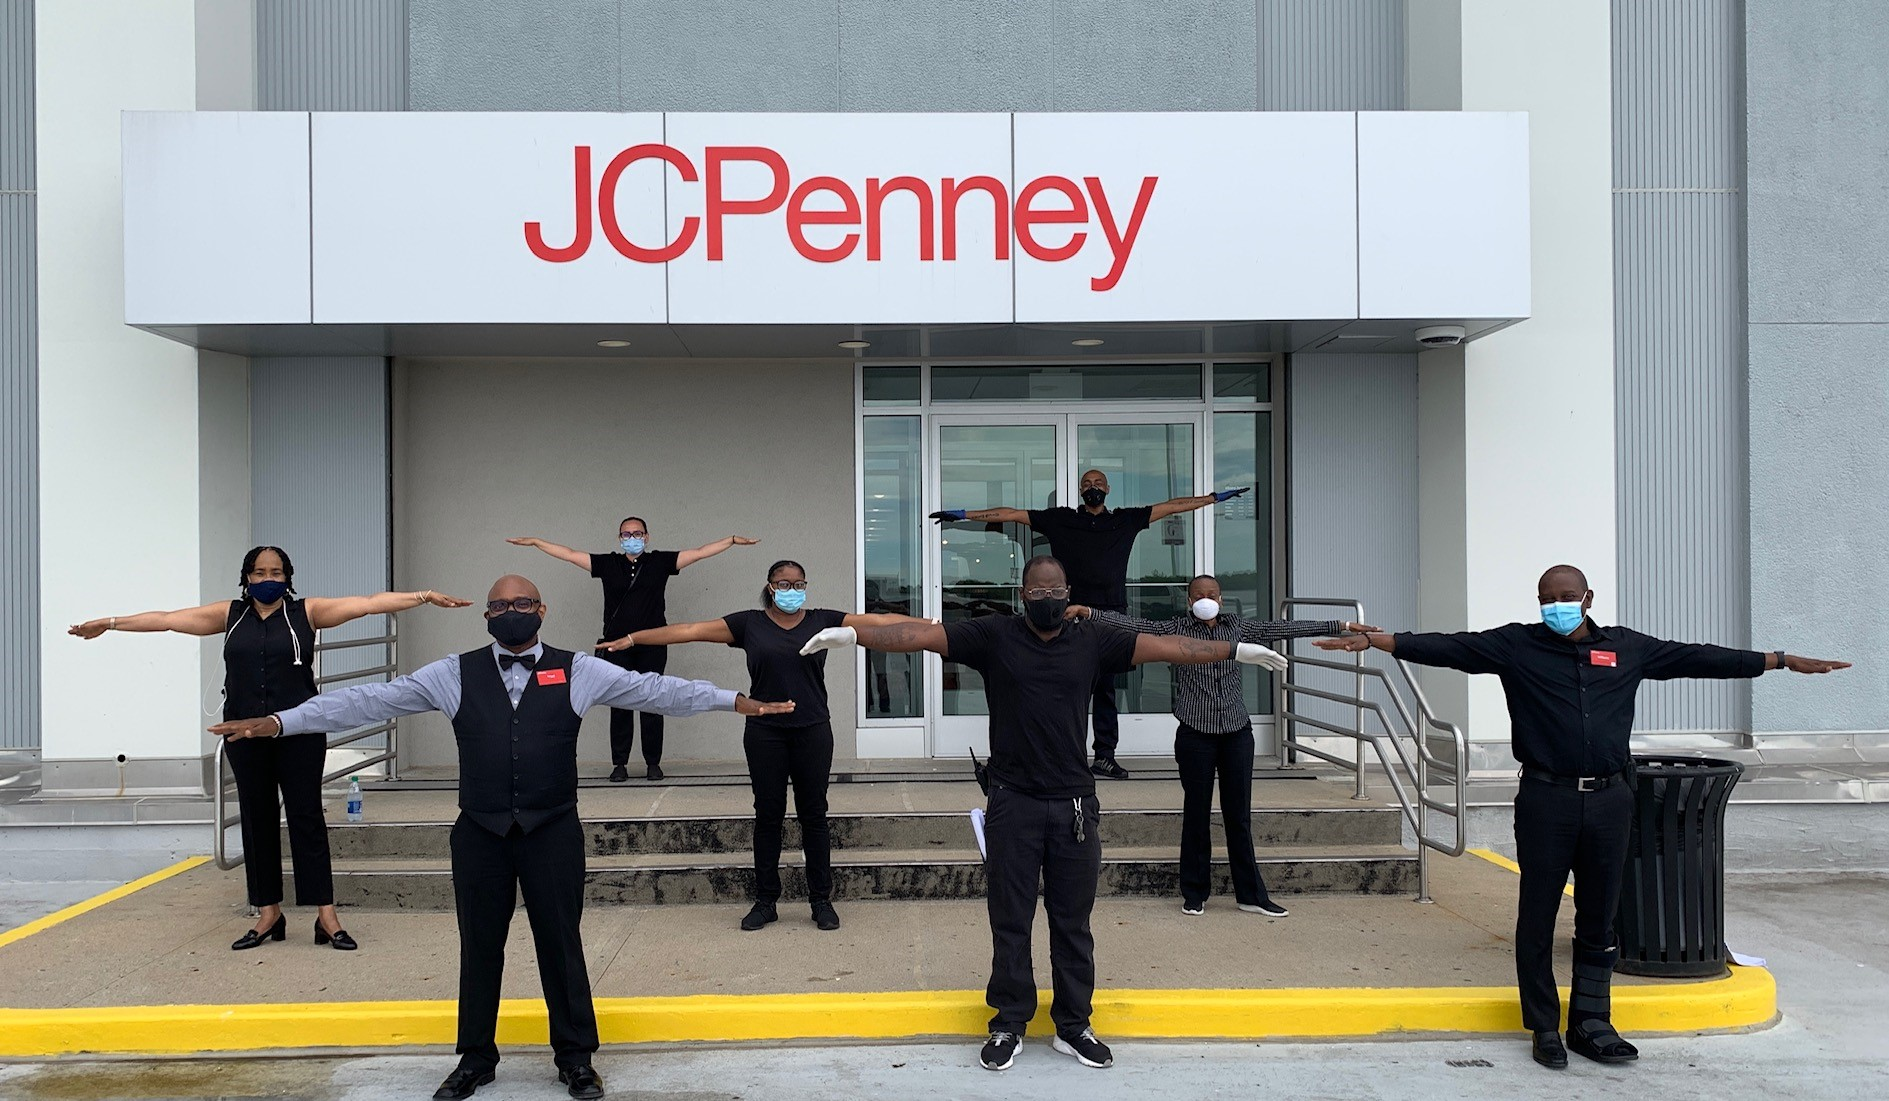 JCPenney employees social distancing and wearing masks